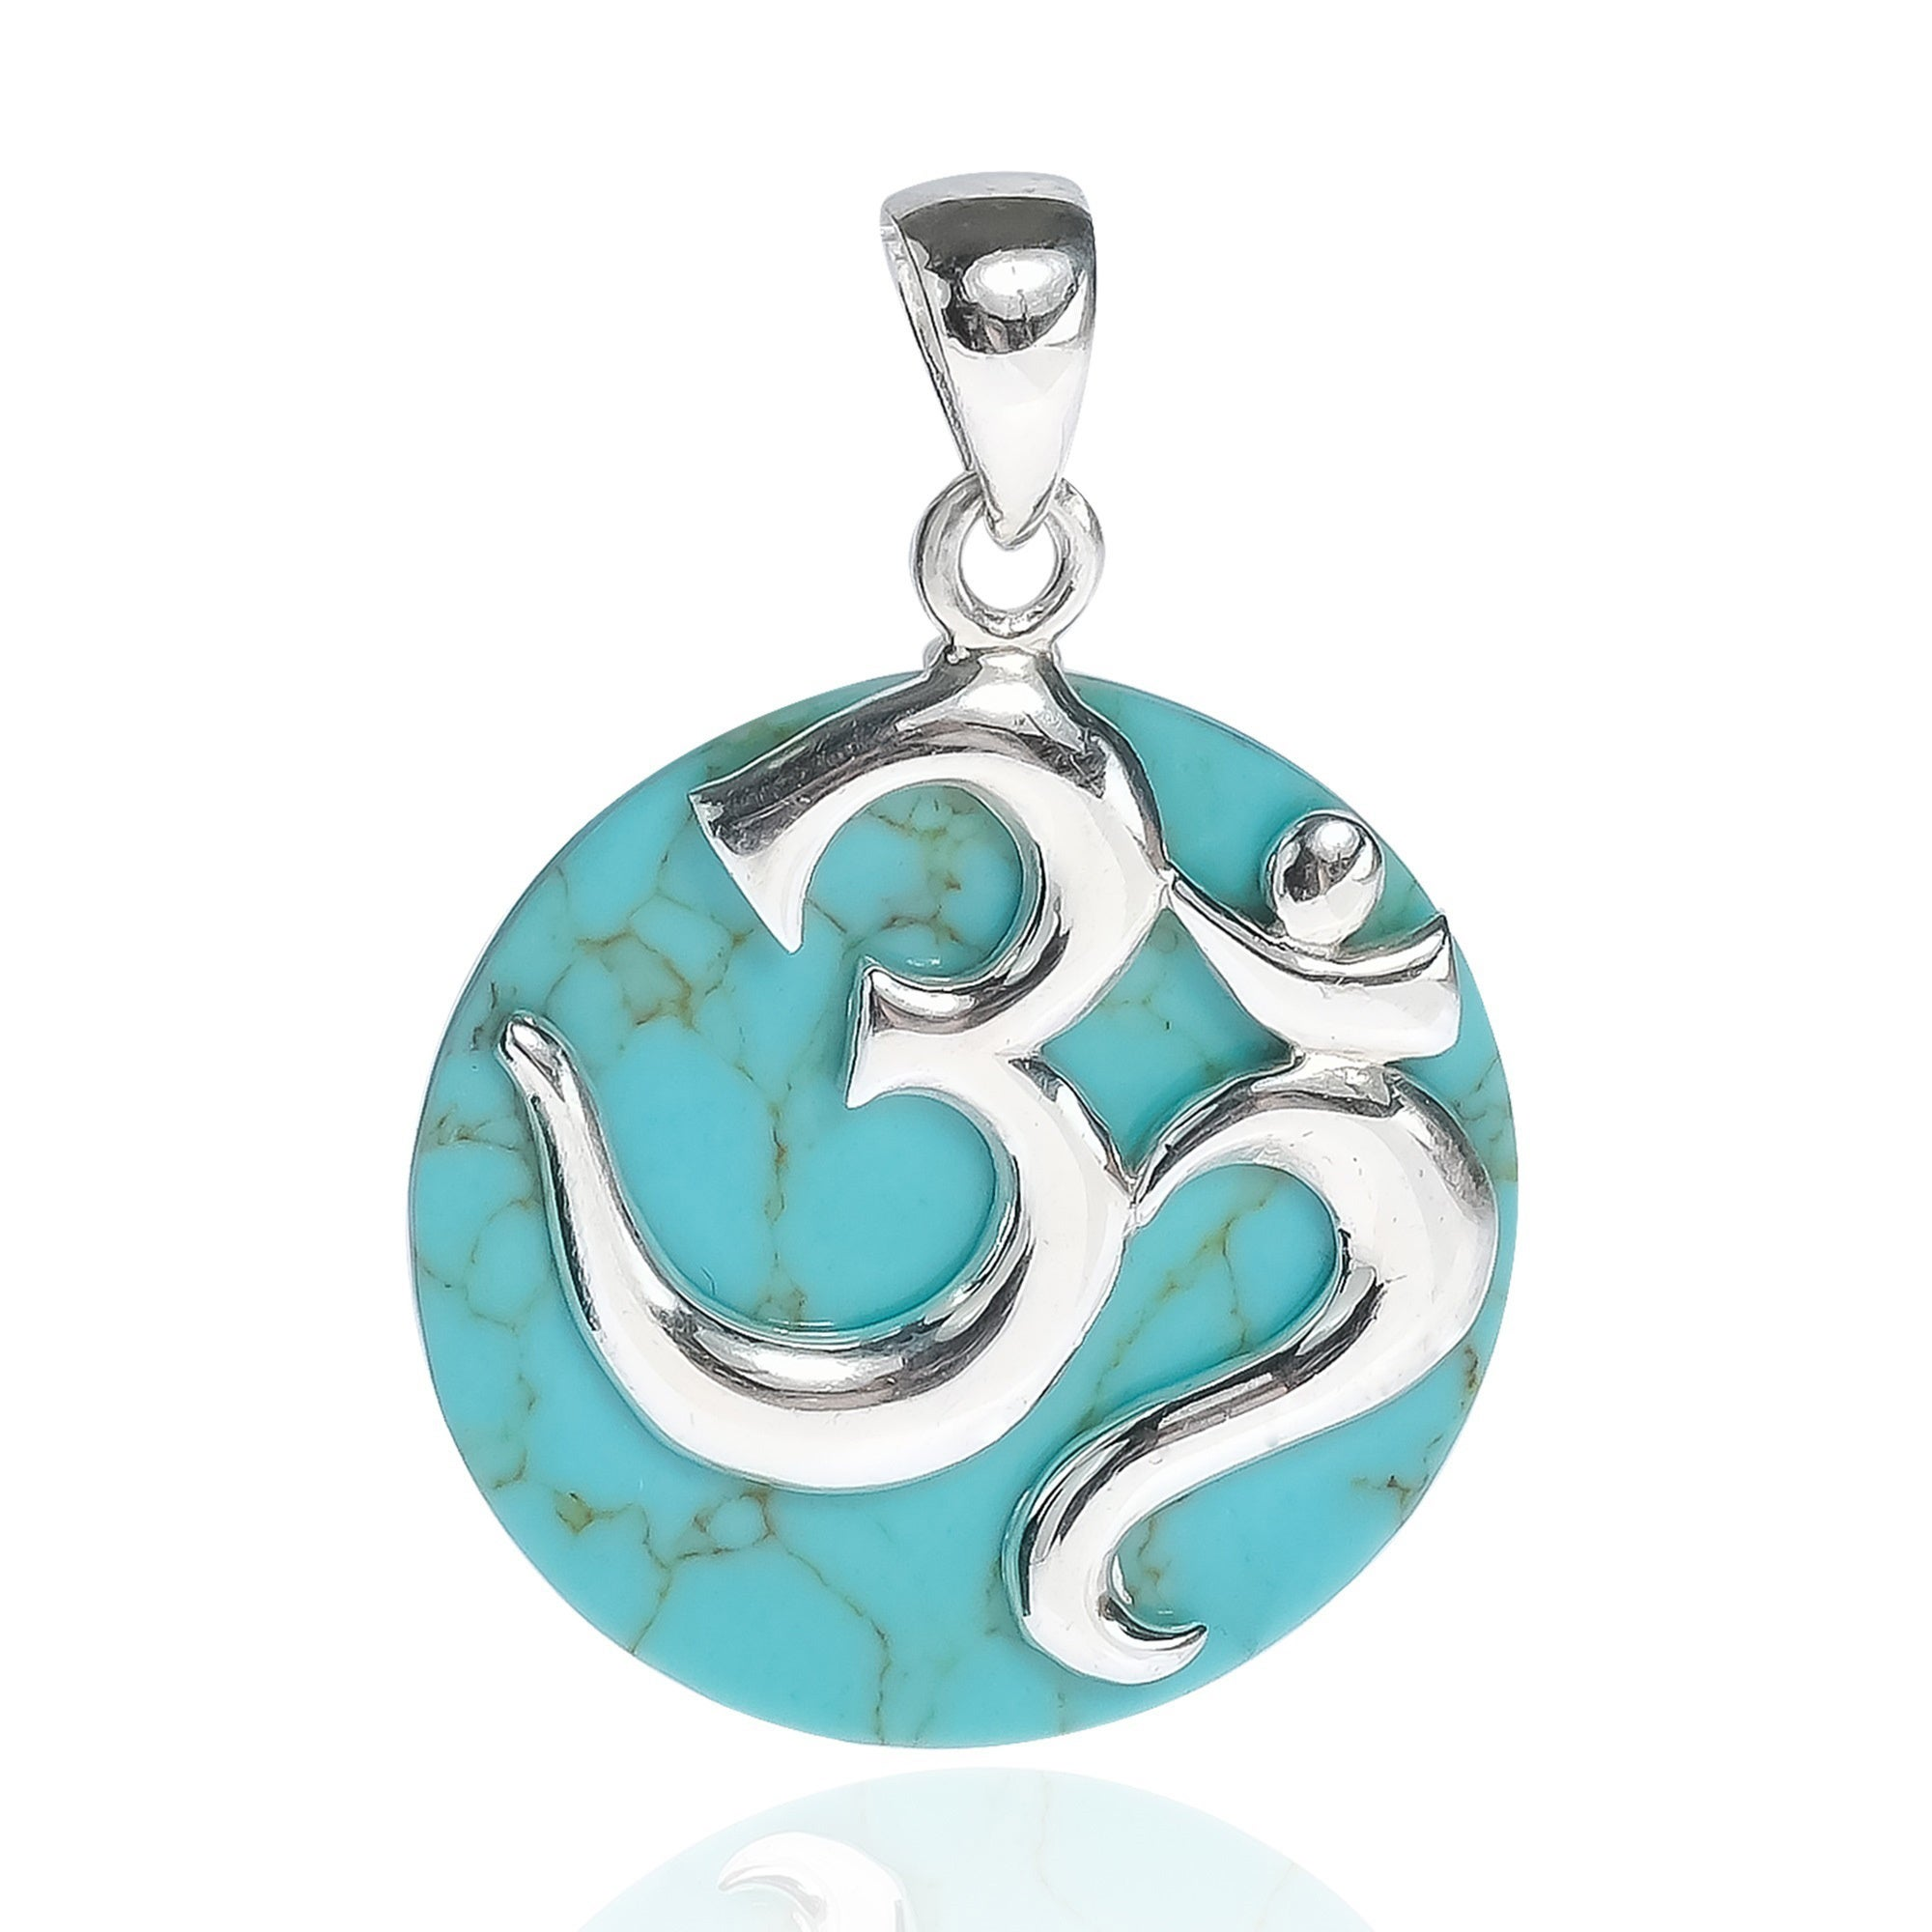 Handmade Aum Or Ohm Symbol Script 925 Sterling Silver Pendant Thailand